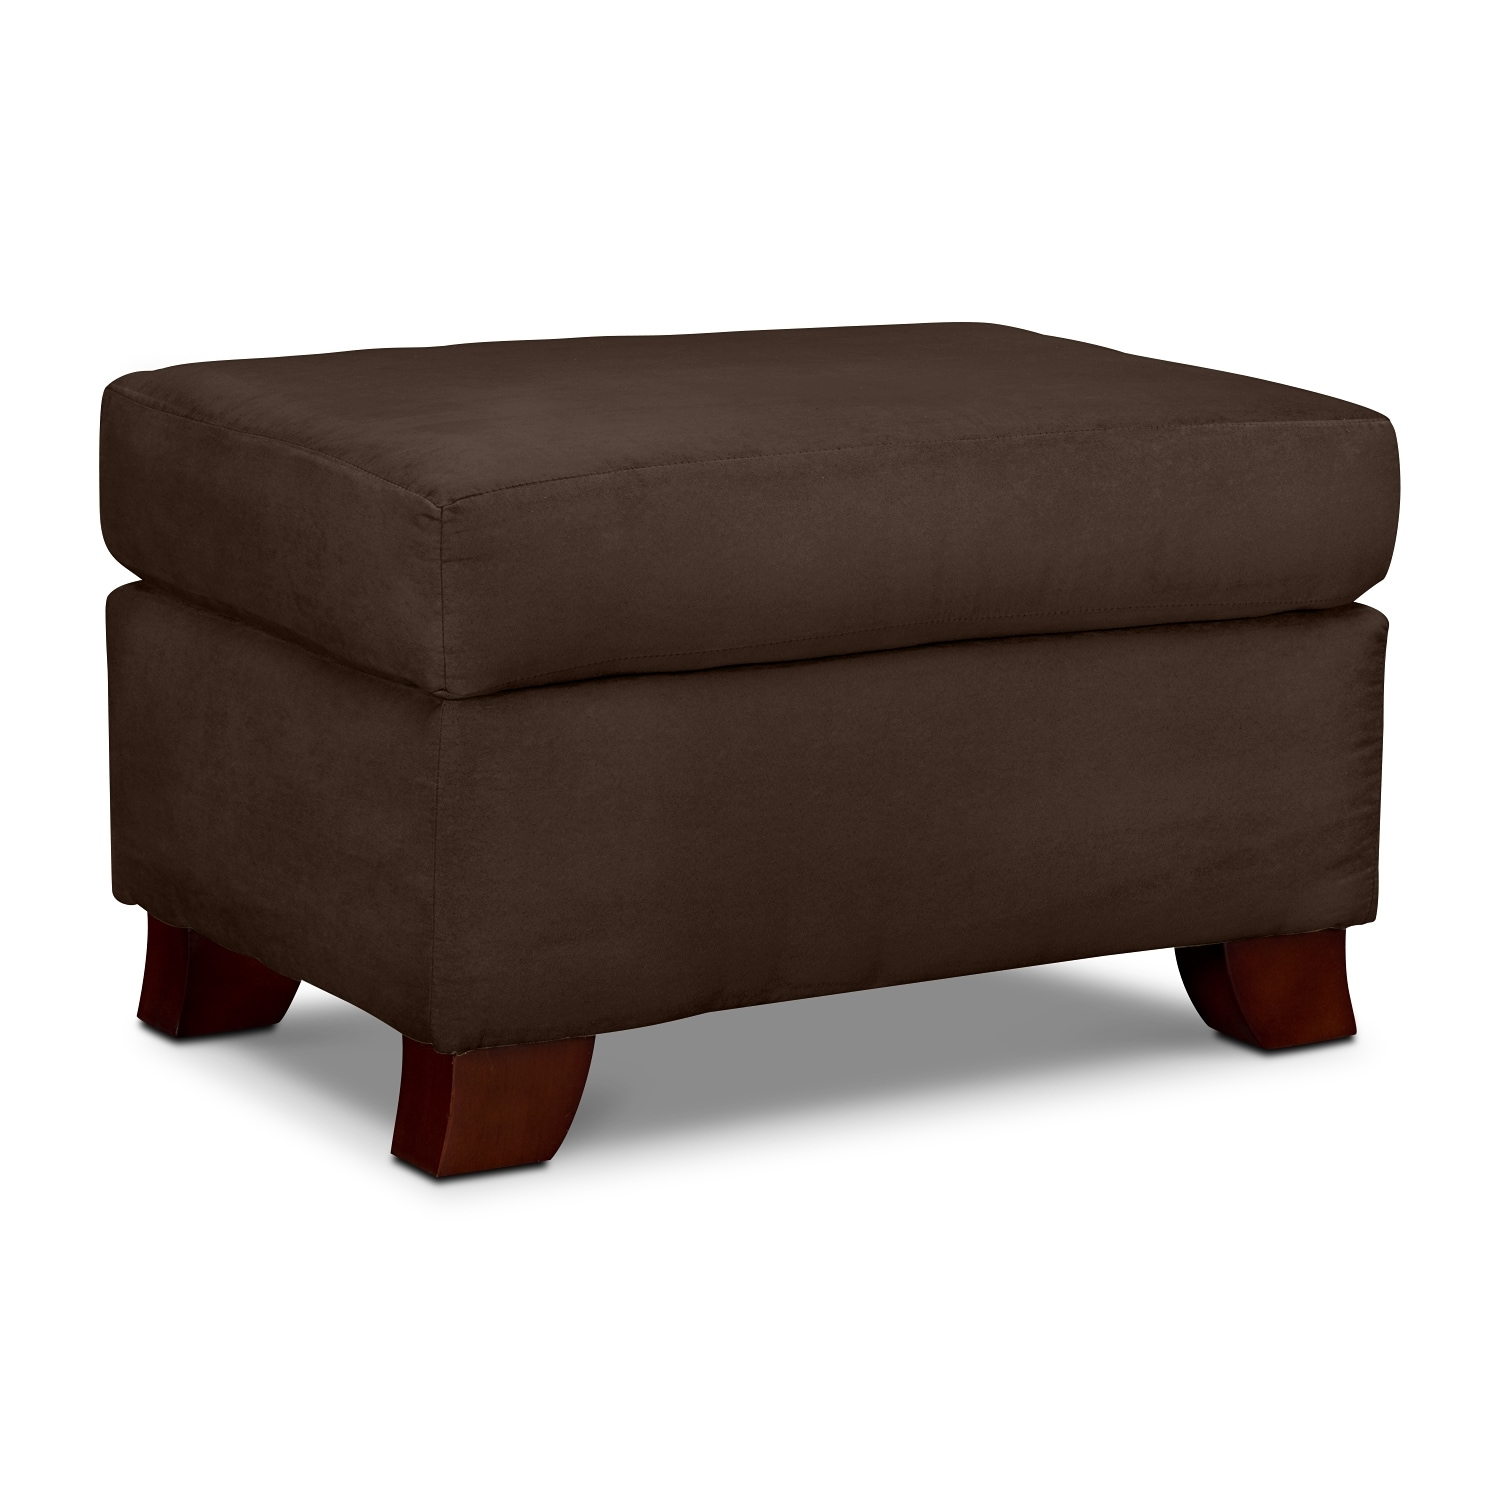 Living Room Furniture - Adrian Chocolate Ottoman